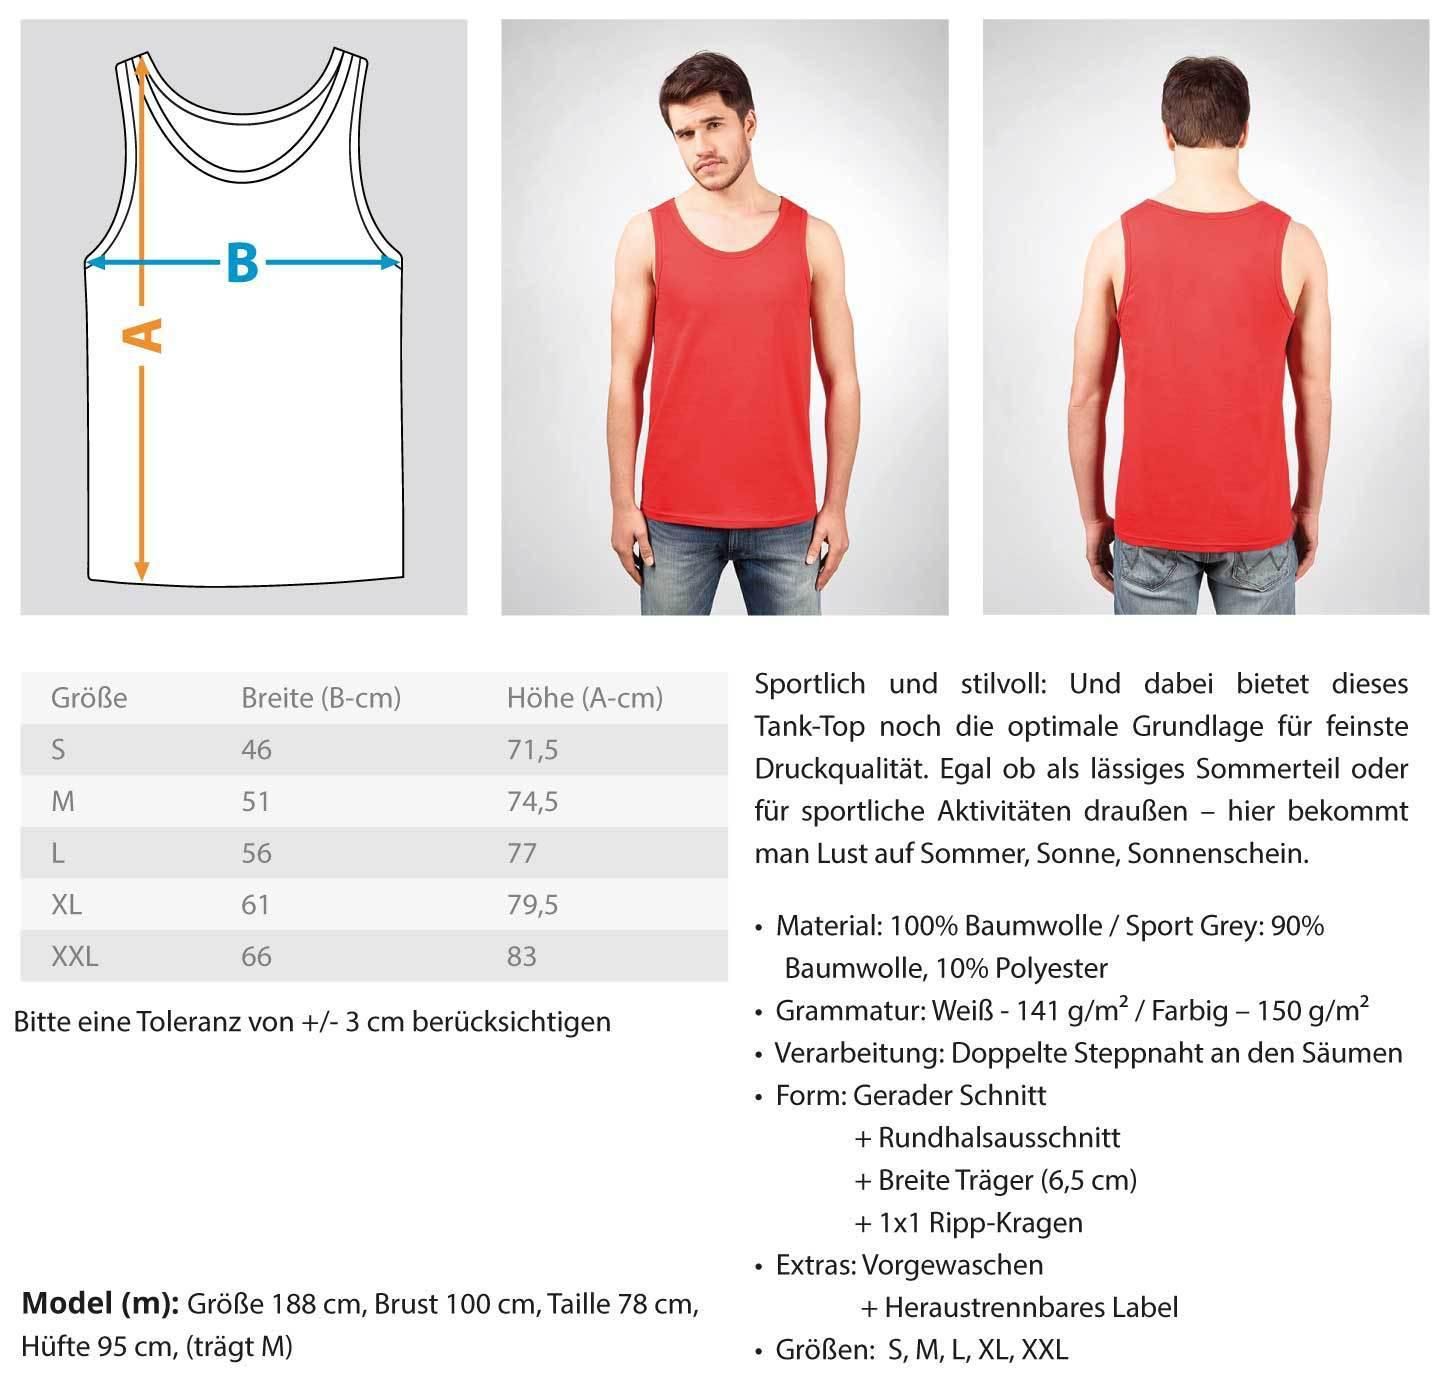 FETTEN BASS..? - Herren Tanktop Herren Tank-Top - Rave On!® der Club & Techno Szene Shop für Coole Junge Mode Streetwear Style & Fashion Outfits + Sexy Festival 420 Stuff